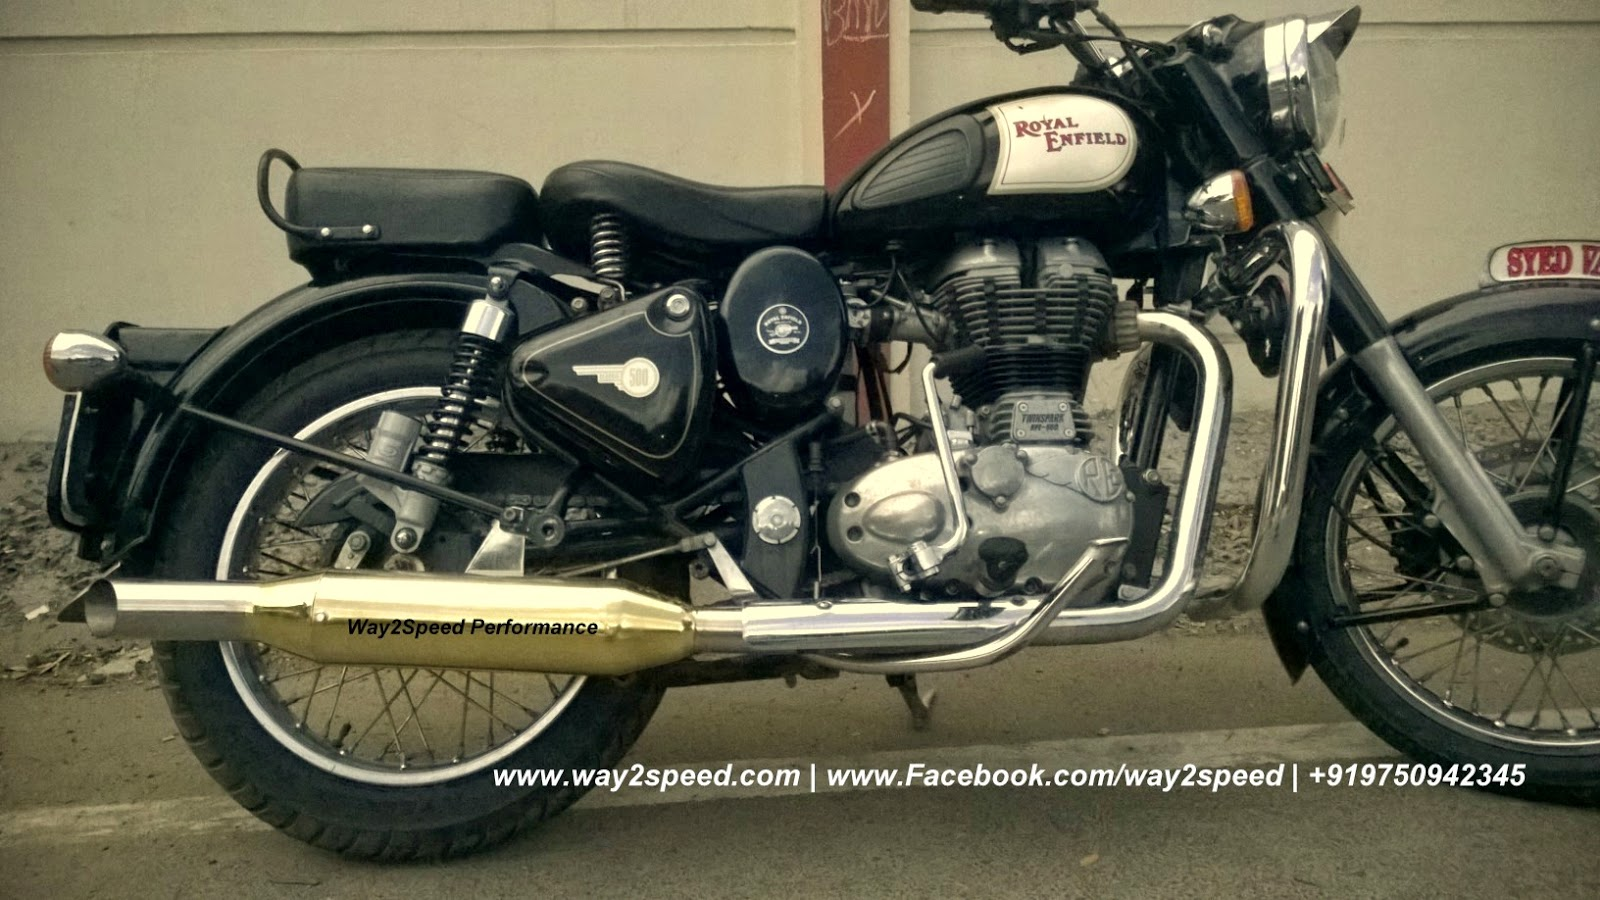 Way2speed Royal Enfield Rifle Exhaust